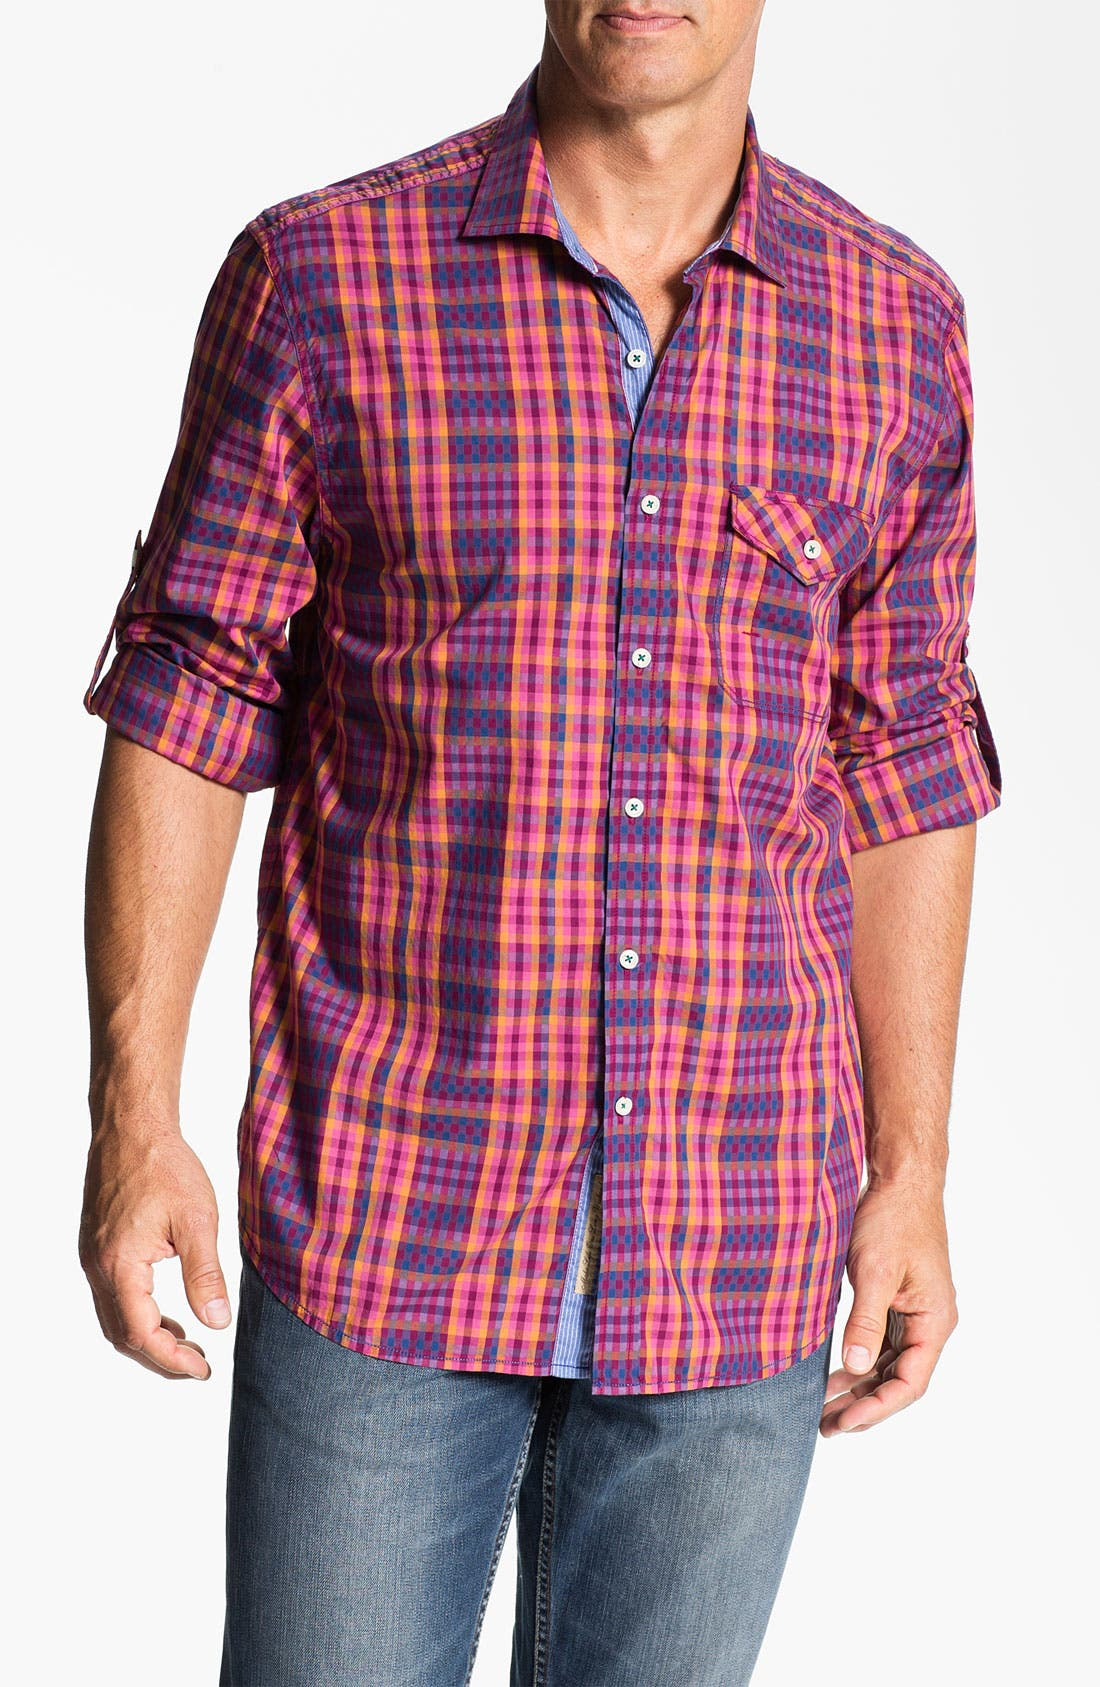 Alternate Image 1 Selected - Tommy Bahama Denim 'Checking In' Sport Shirt